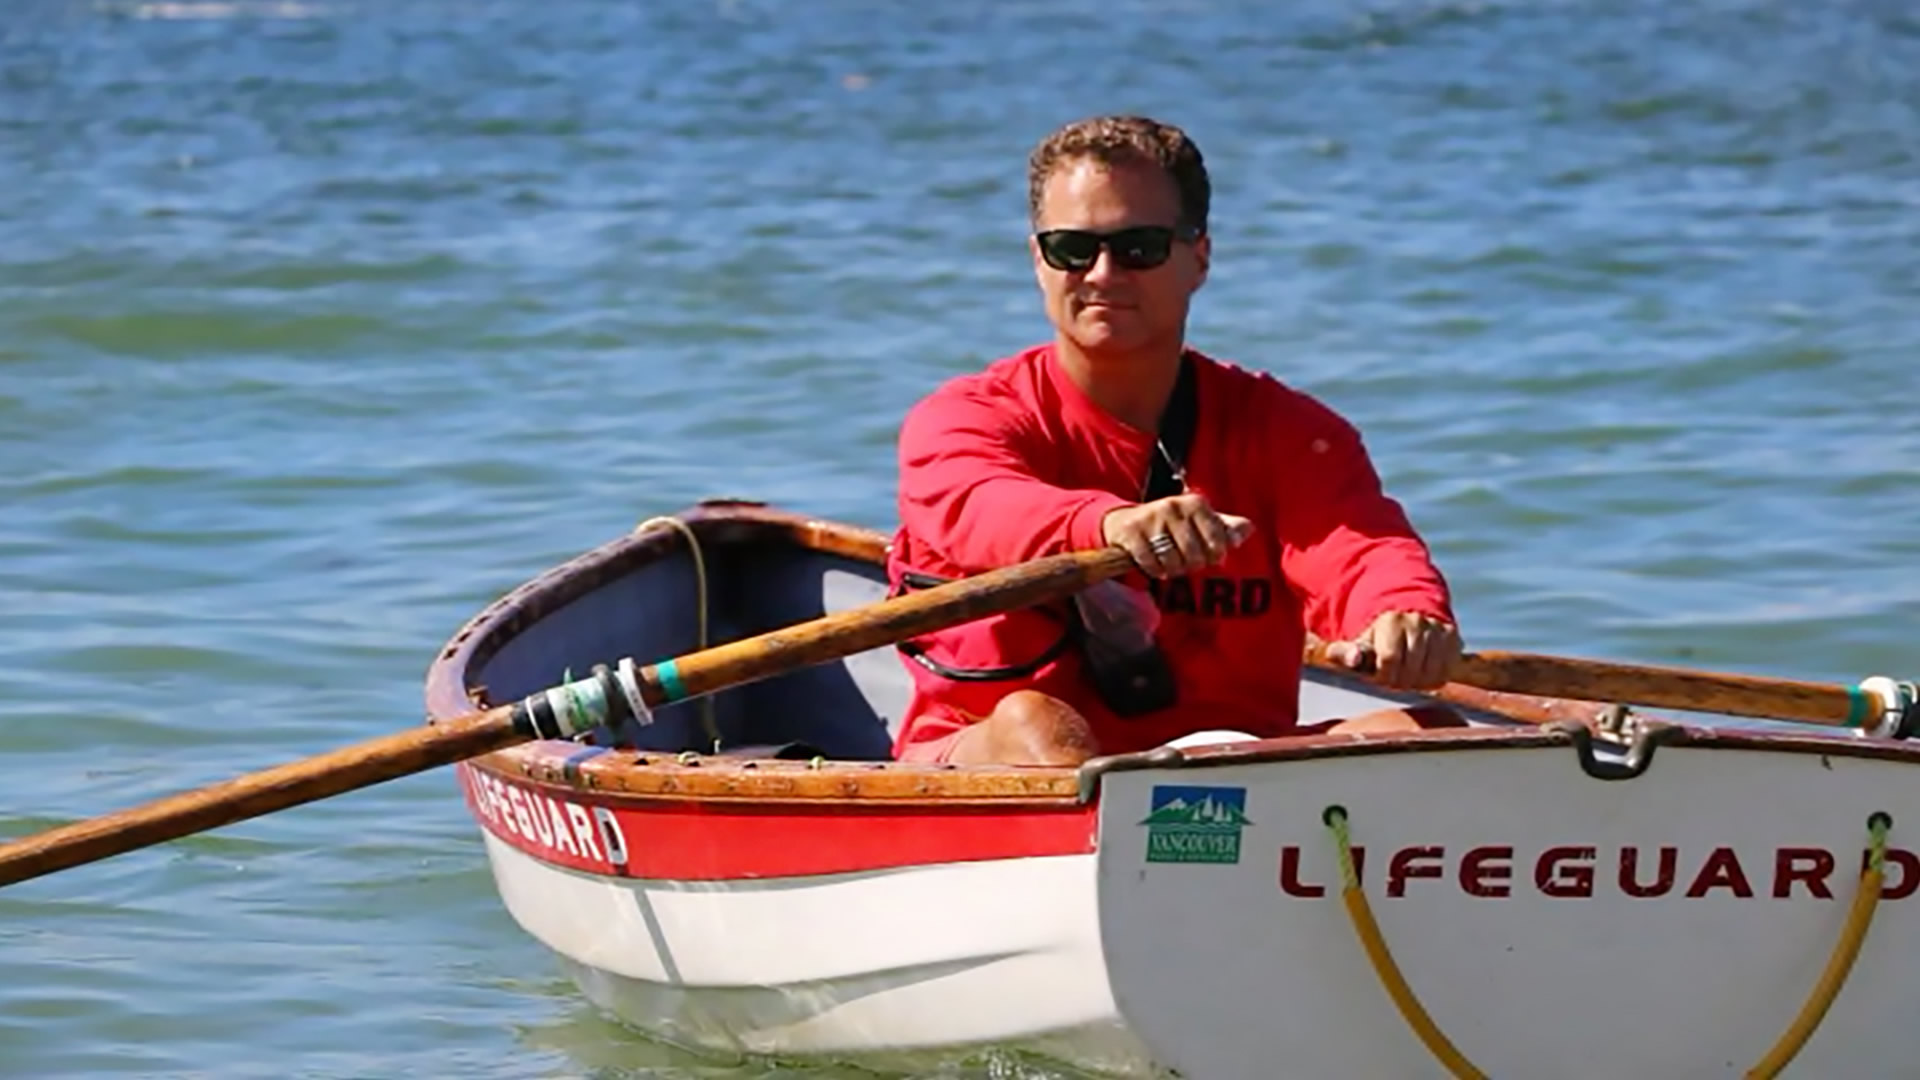 Craig-Amundsen-credit-Maryse-Zeidler-CBC-Westcoast-Lifeguard-Rowboat-Whitehall-Rowing-and-Sail-3a